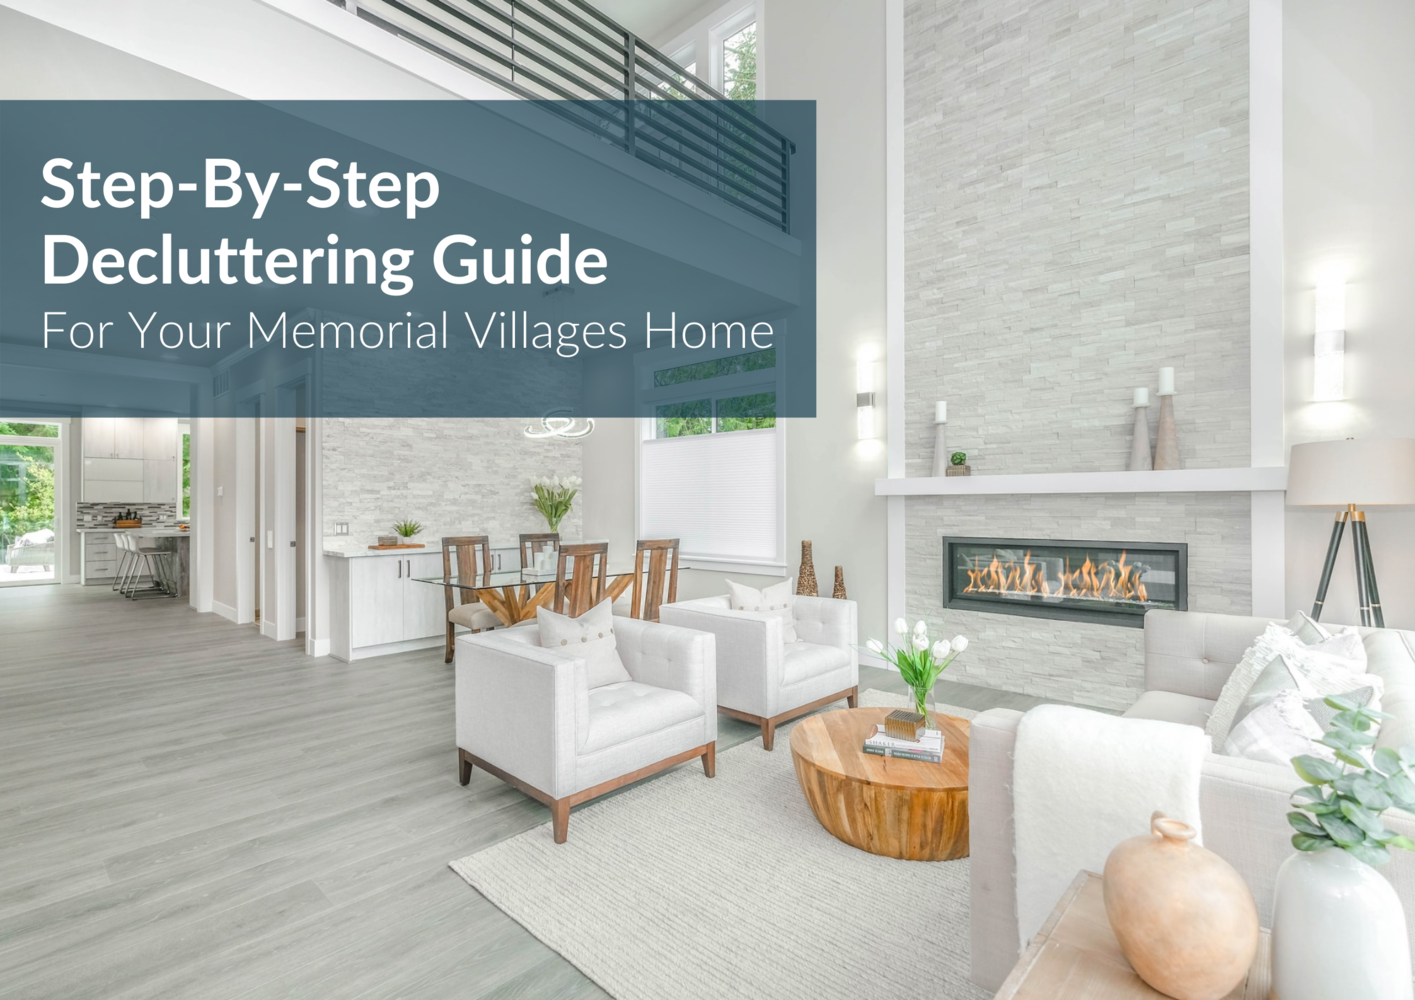 Seller-Musts To Increase Memorial Villages Home Value